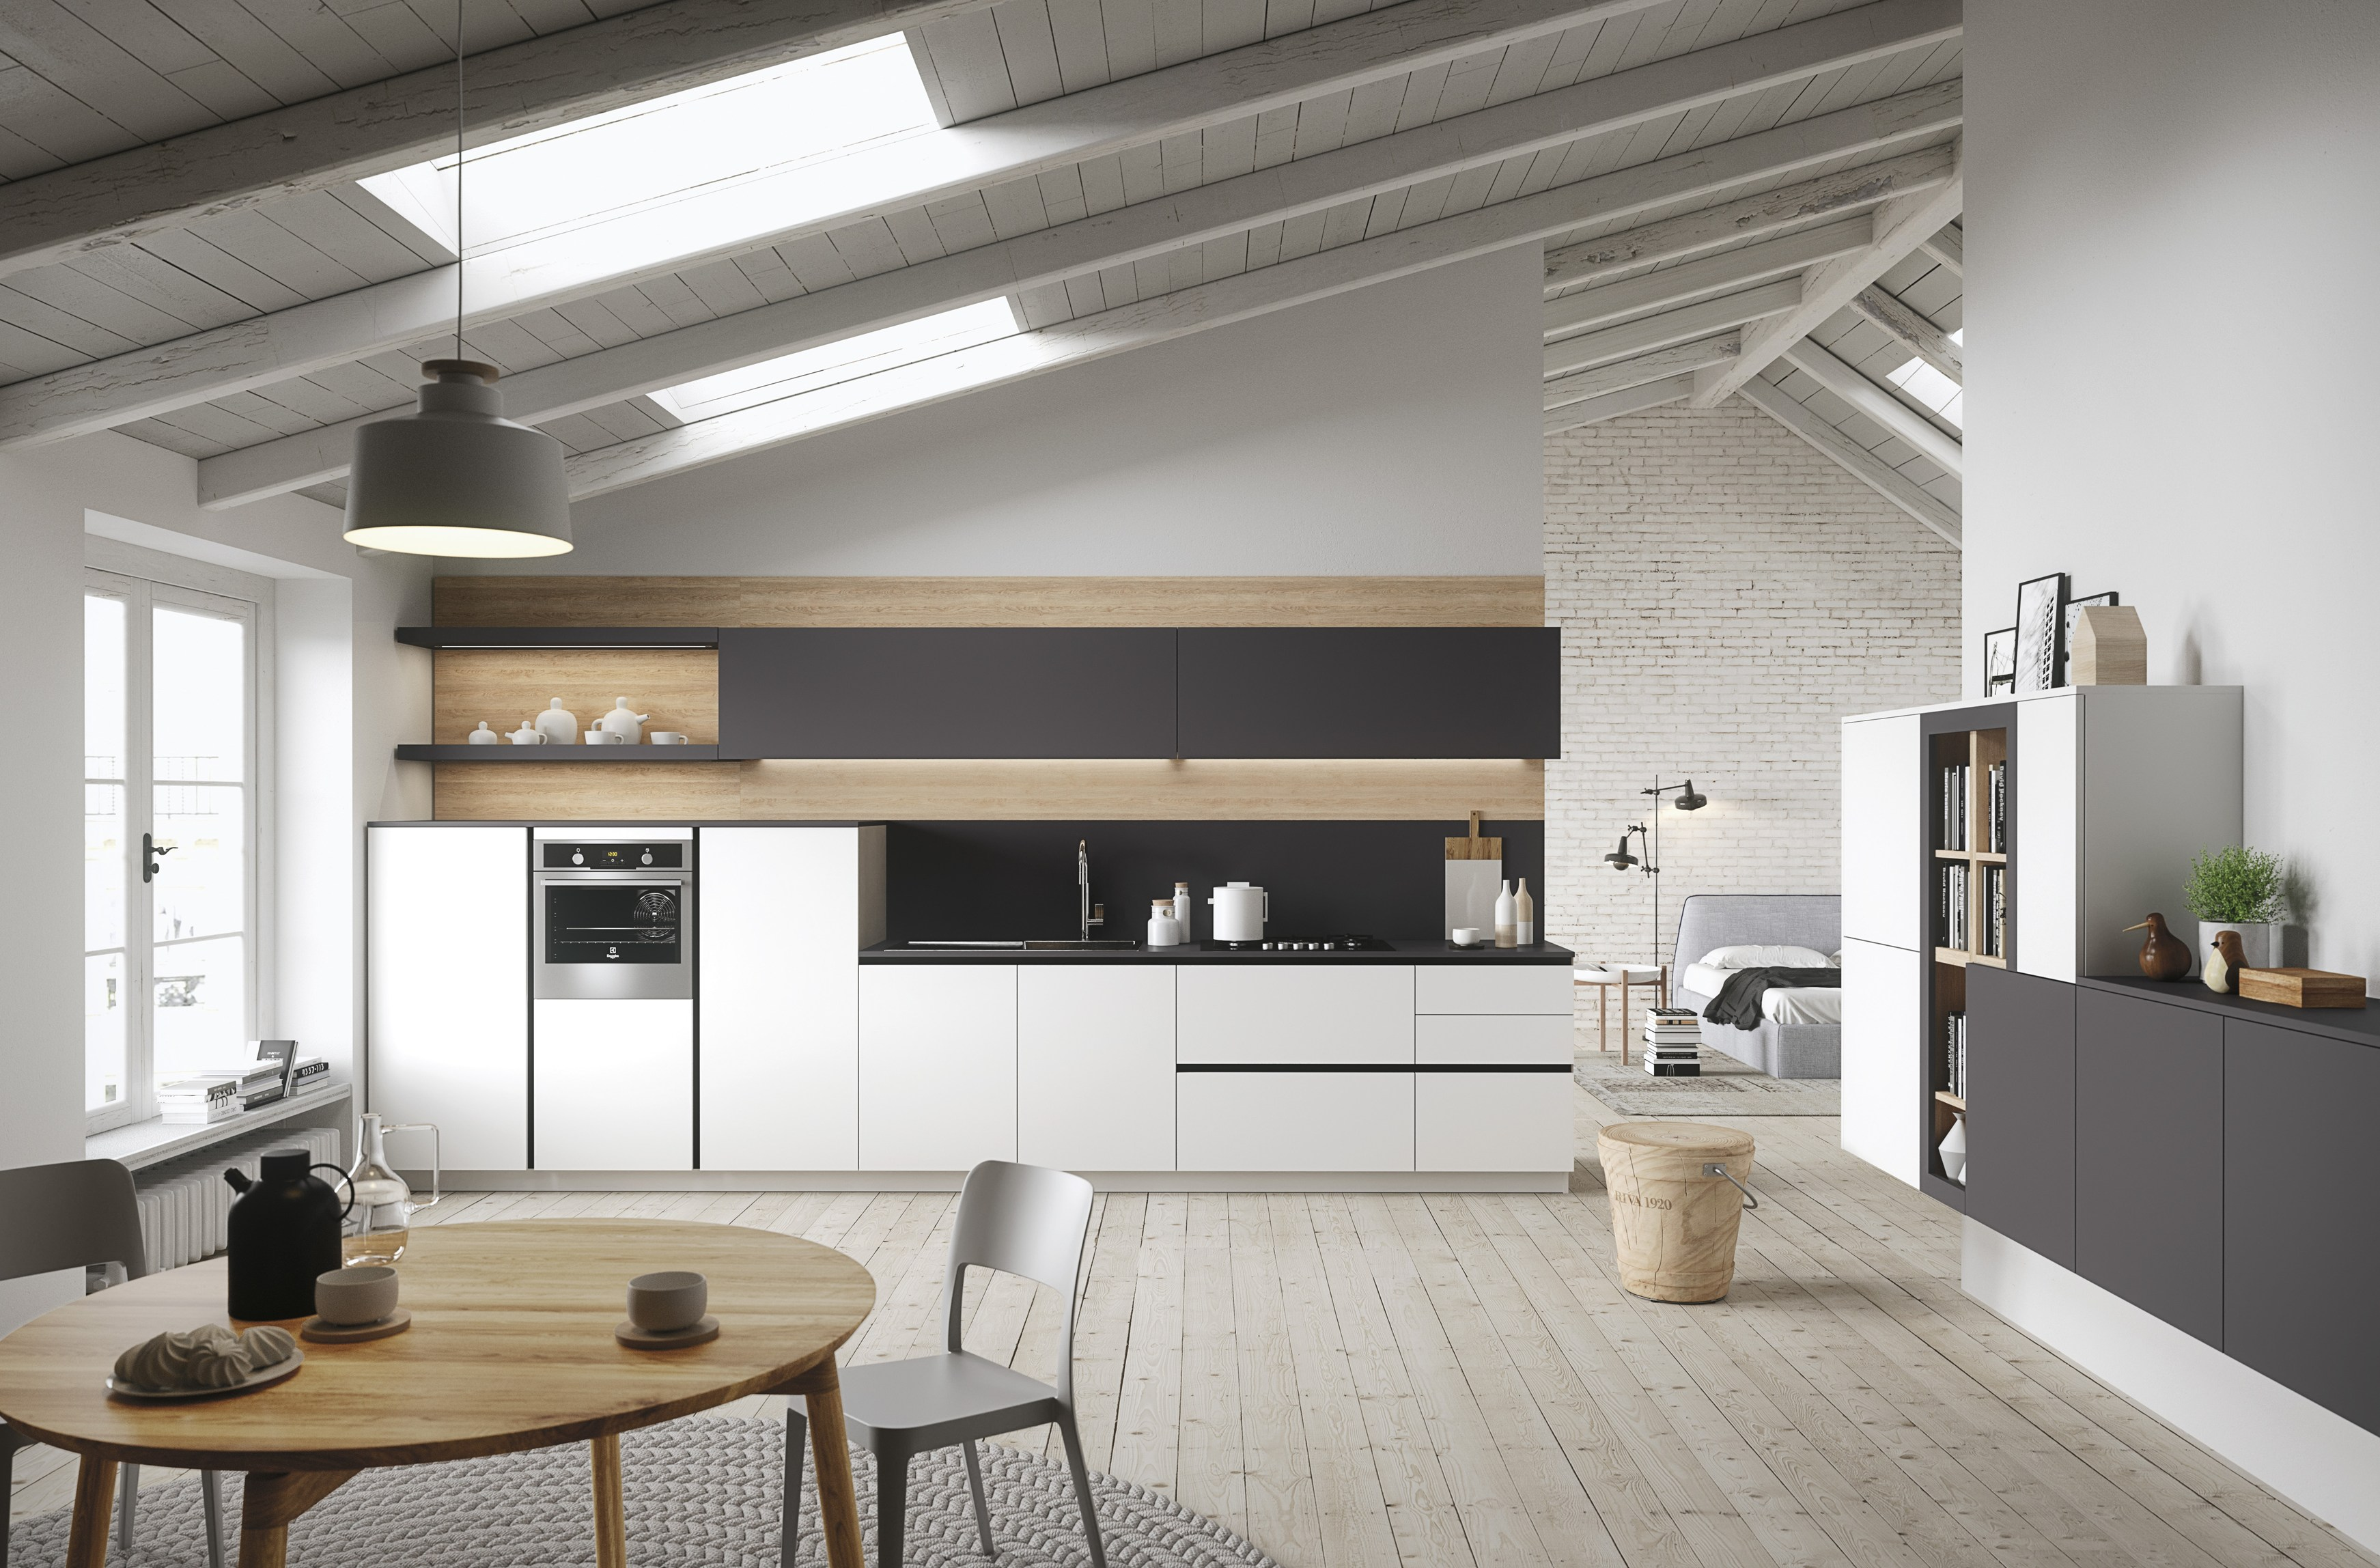 First contemporary style kitchen by snaidero for Snaidero kitchen